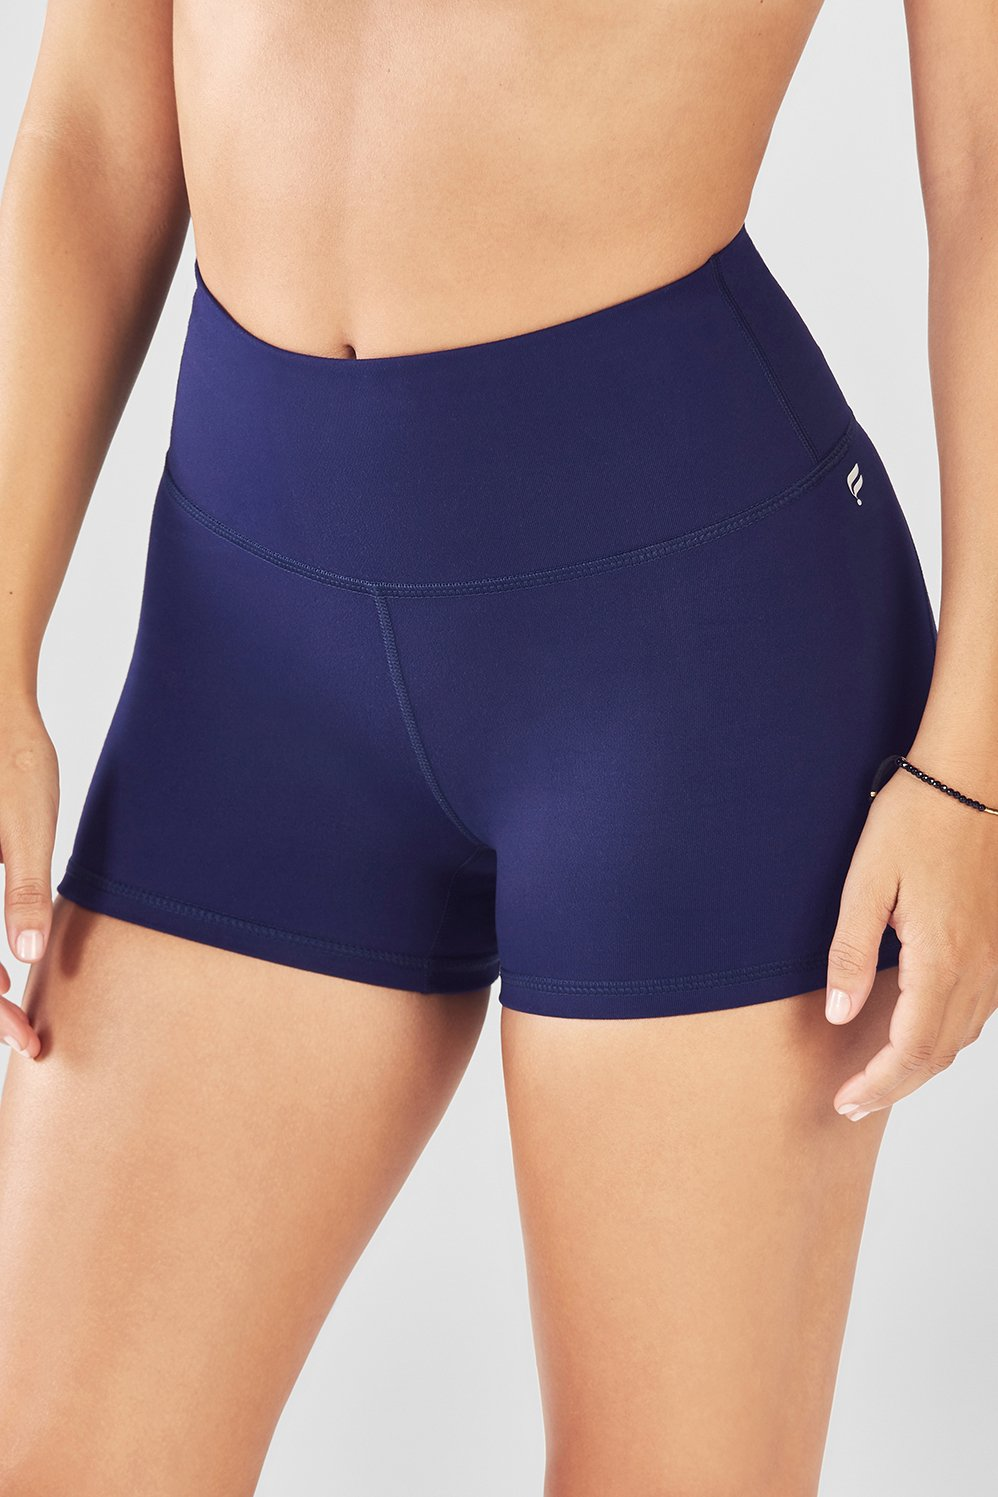 f71f9479acc High-Waisted Solid PowerHold® Shorts - Fabletics